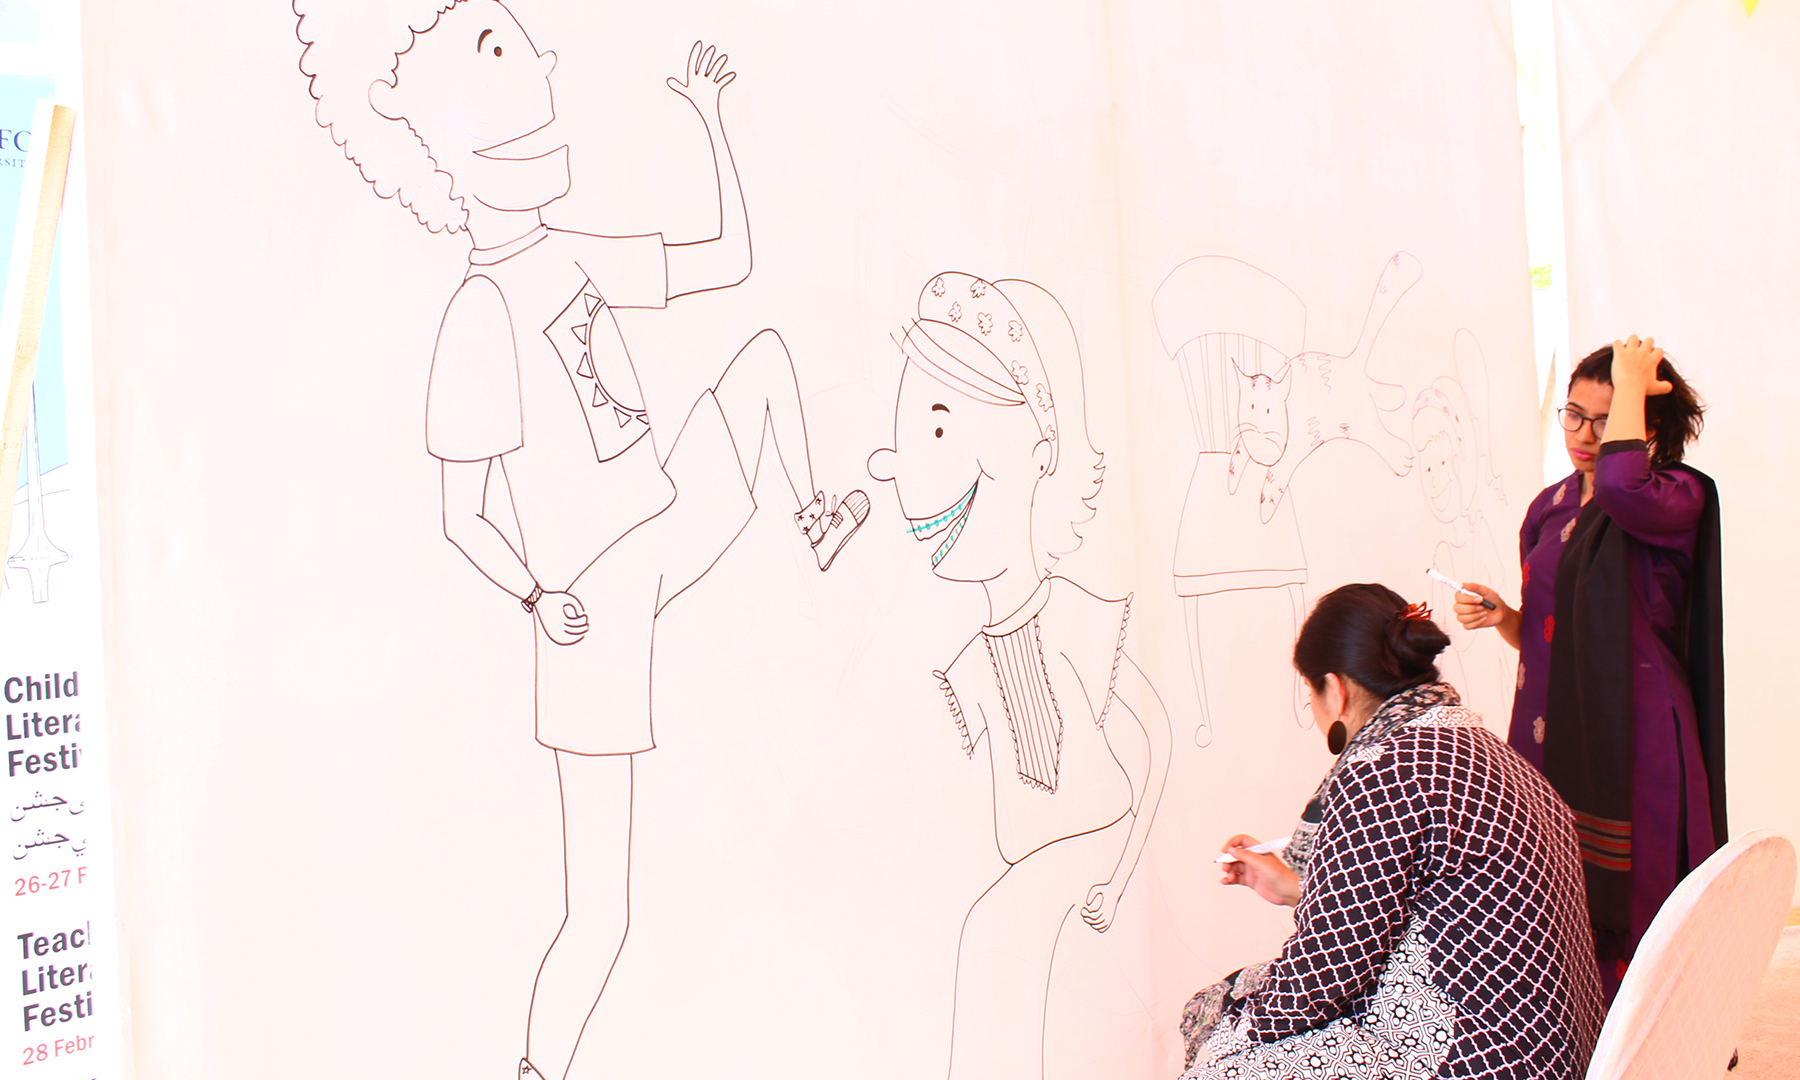 Paintings being made on the walls of the event held at the Dawood Public School, in Karachi